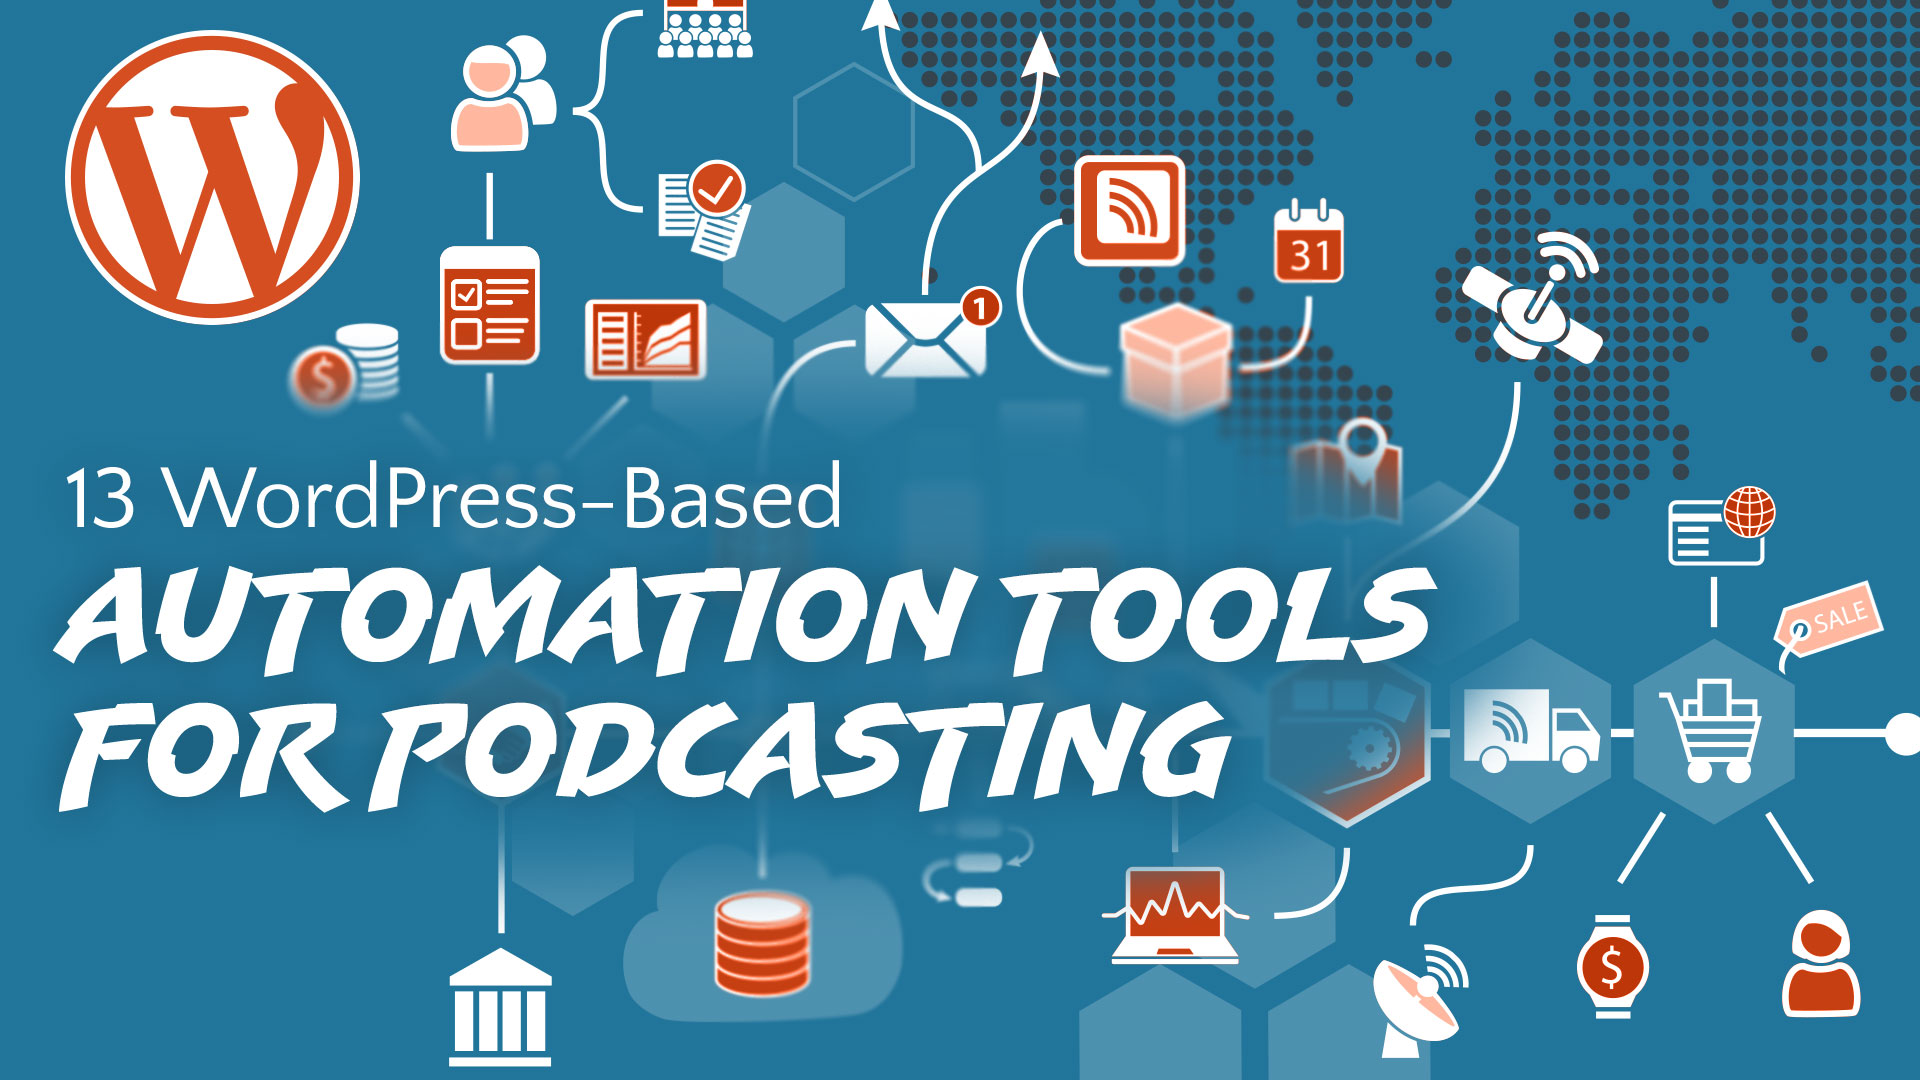 13 WordPress-Based Automation Tools for Podcasting